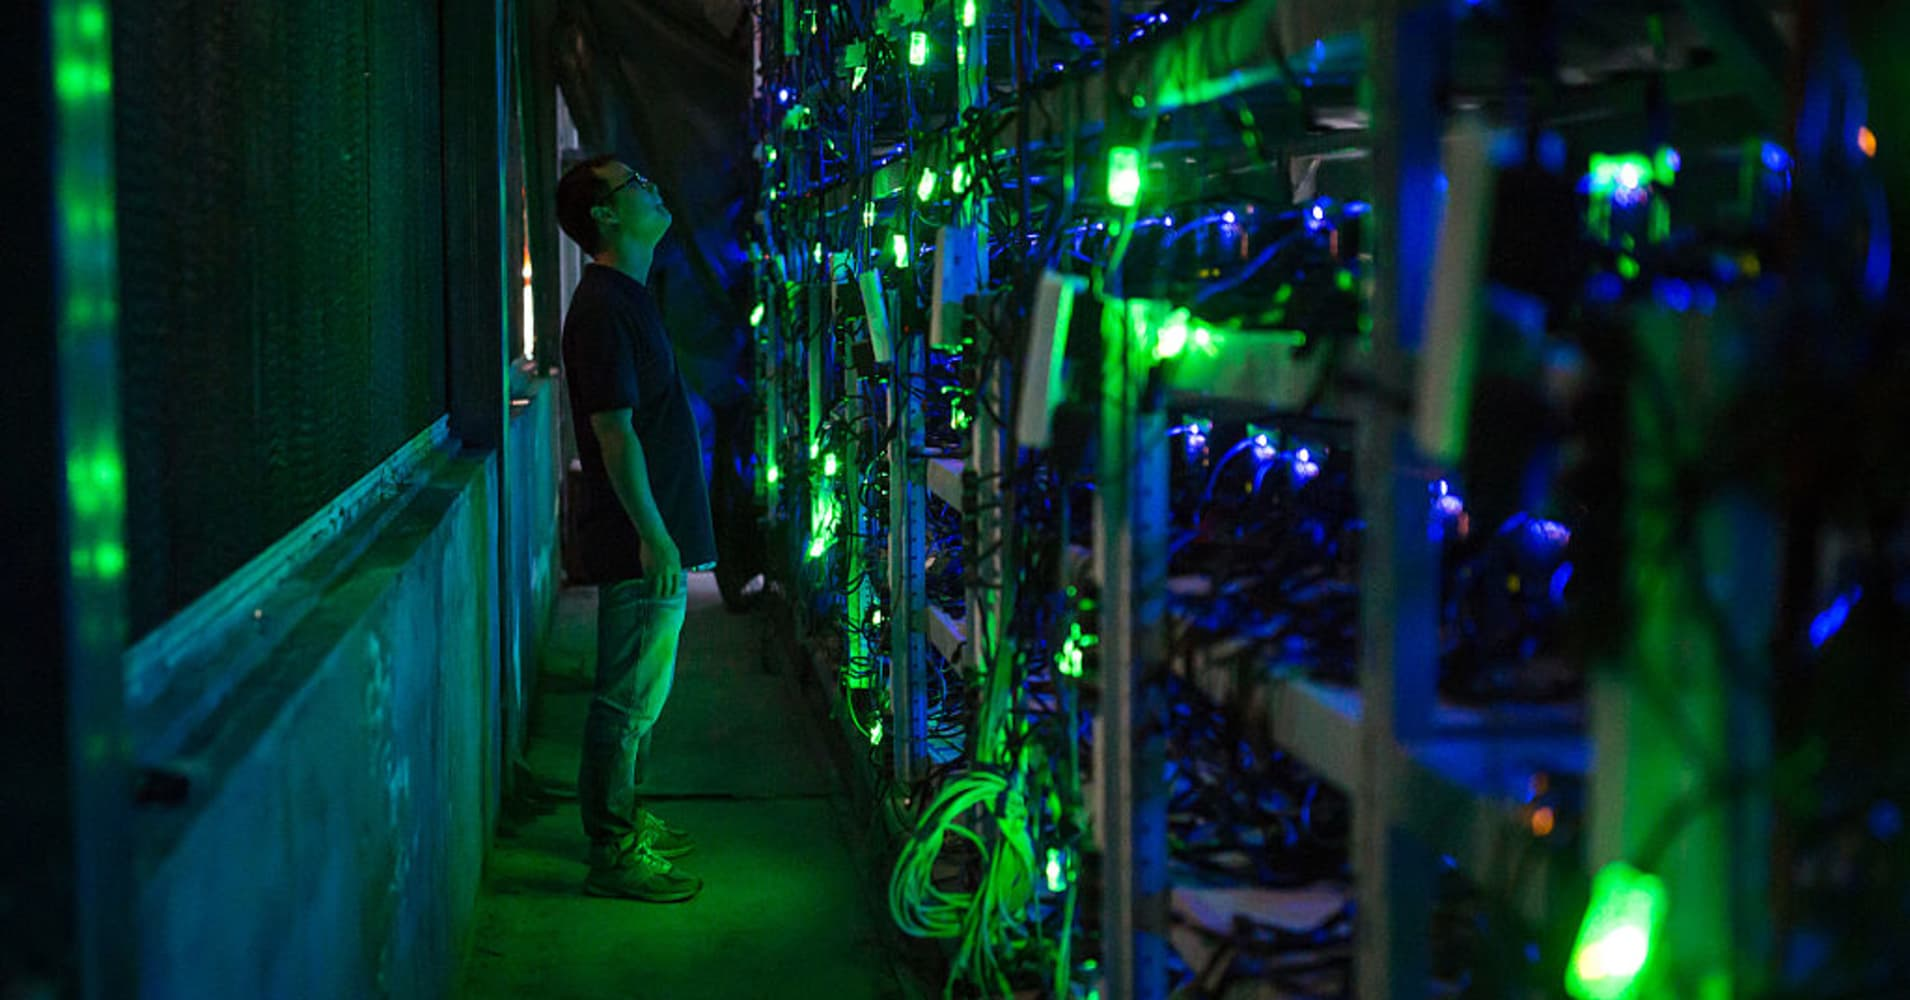 Bitcoin traders look to other digital currencies for returns - CNBC